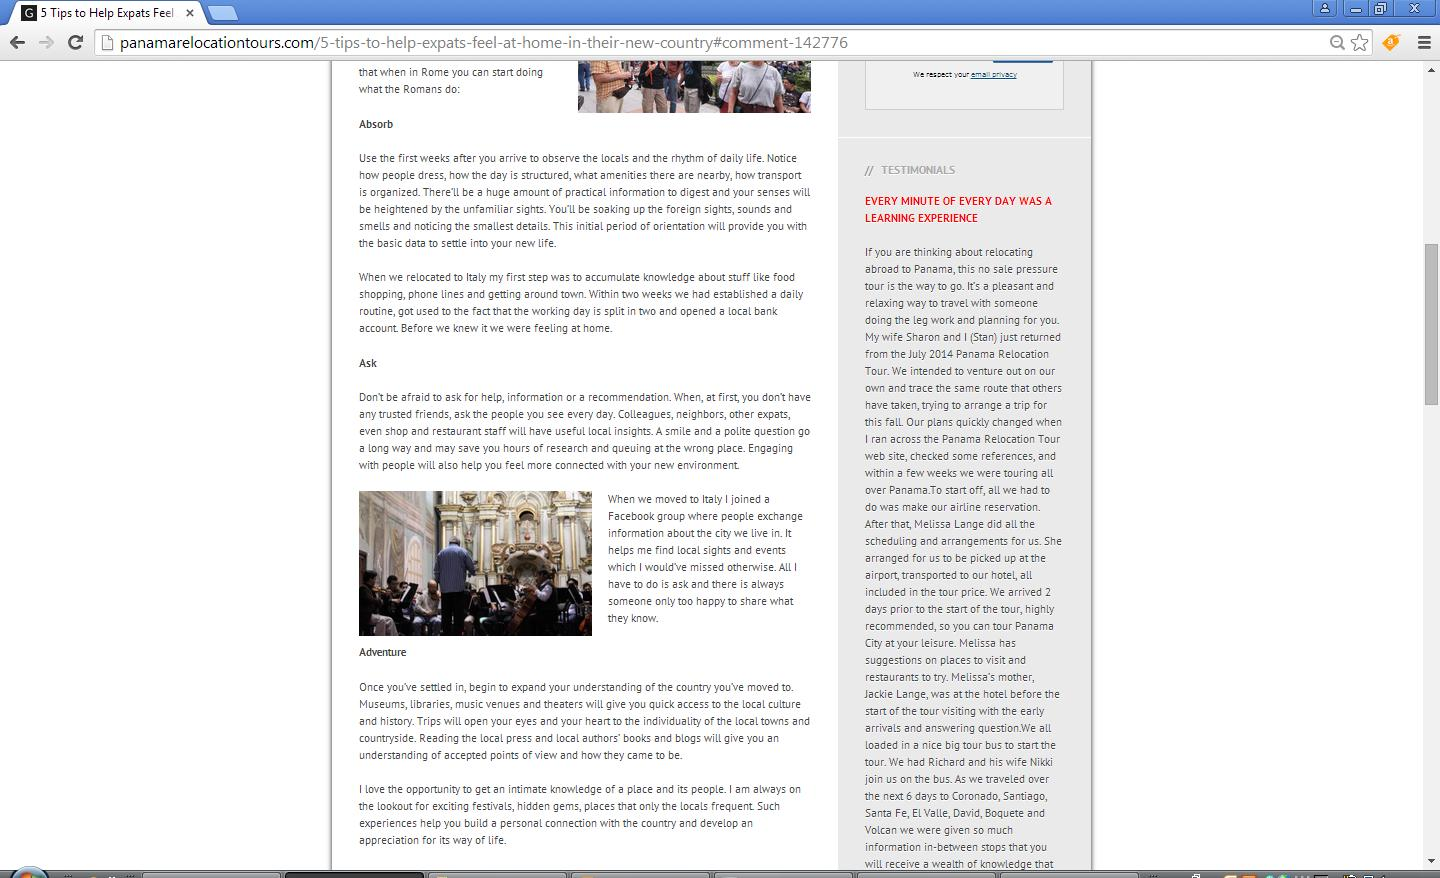 My copied without permission article on the website of the infringing company - 2nd screen